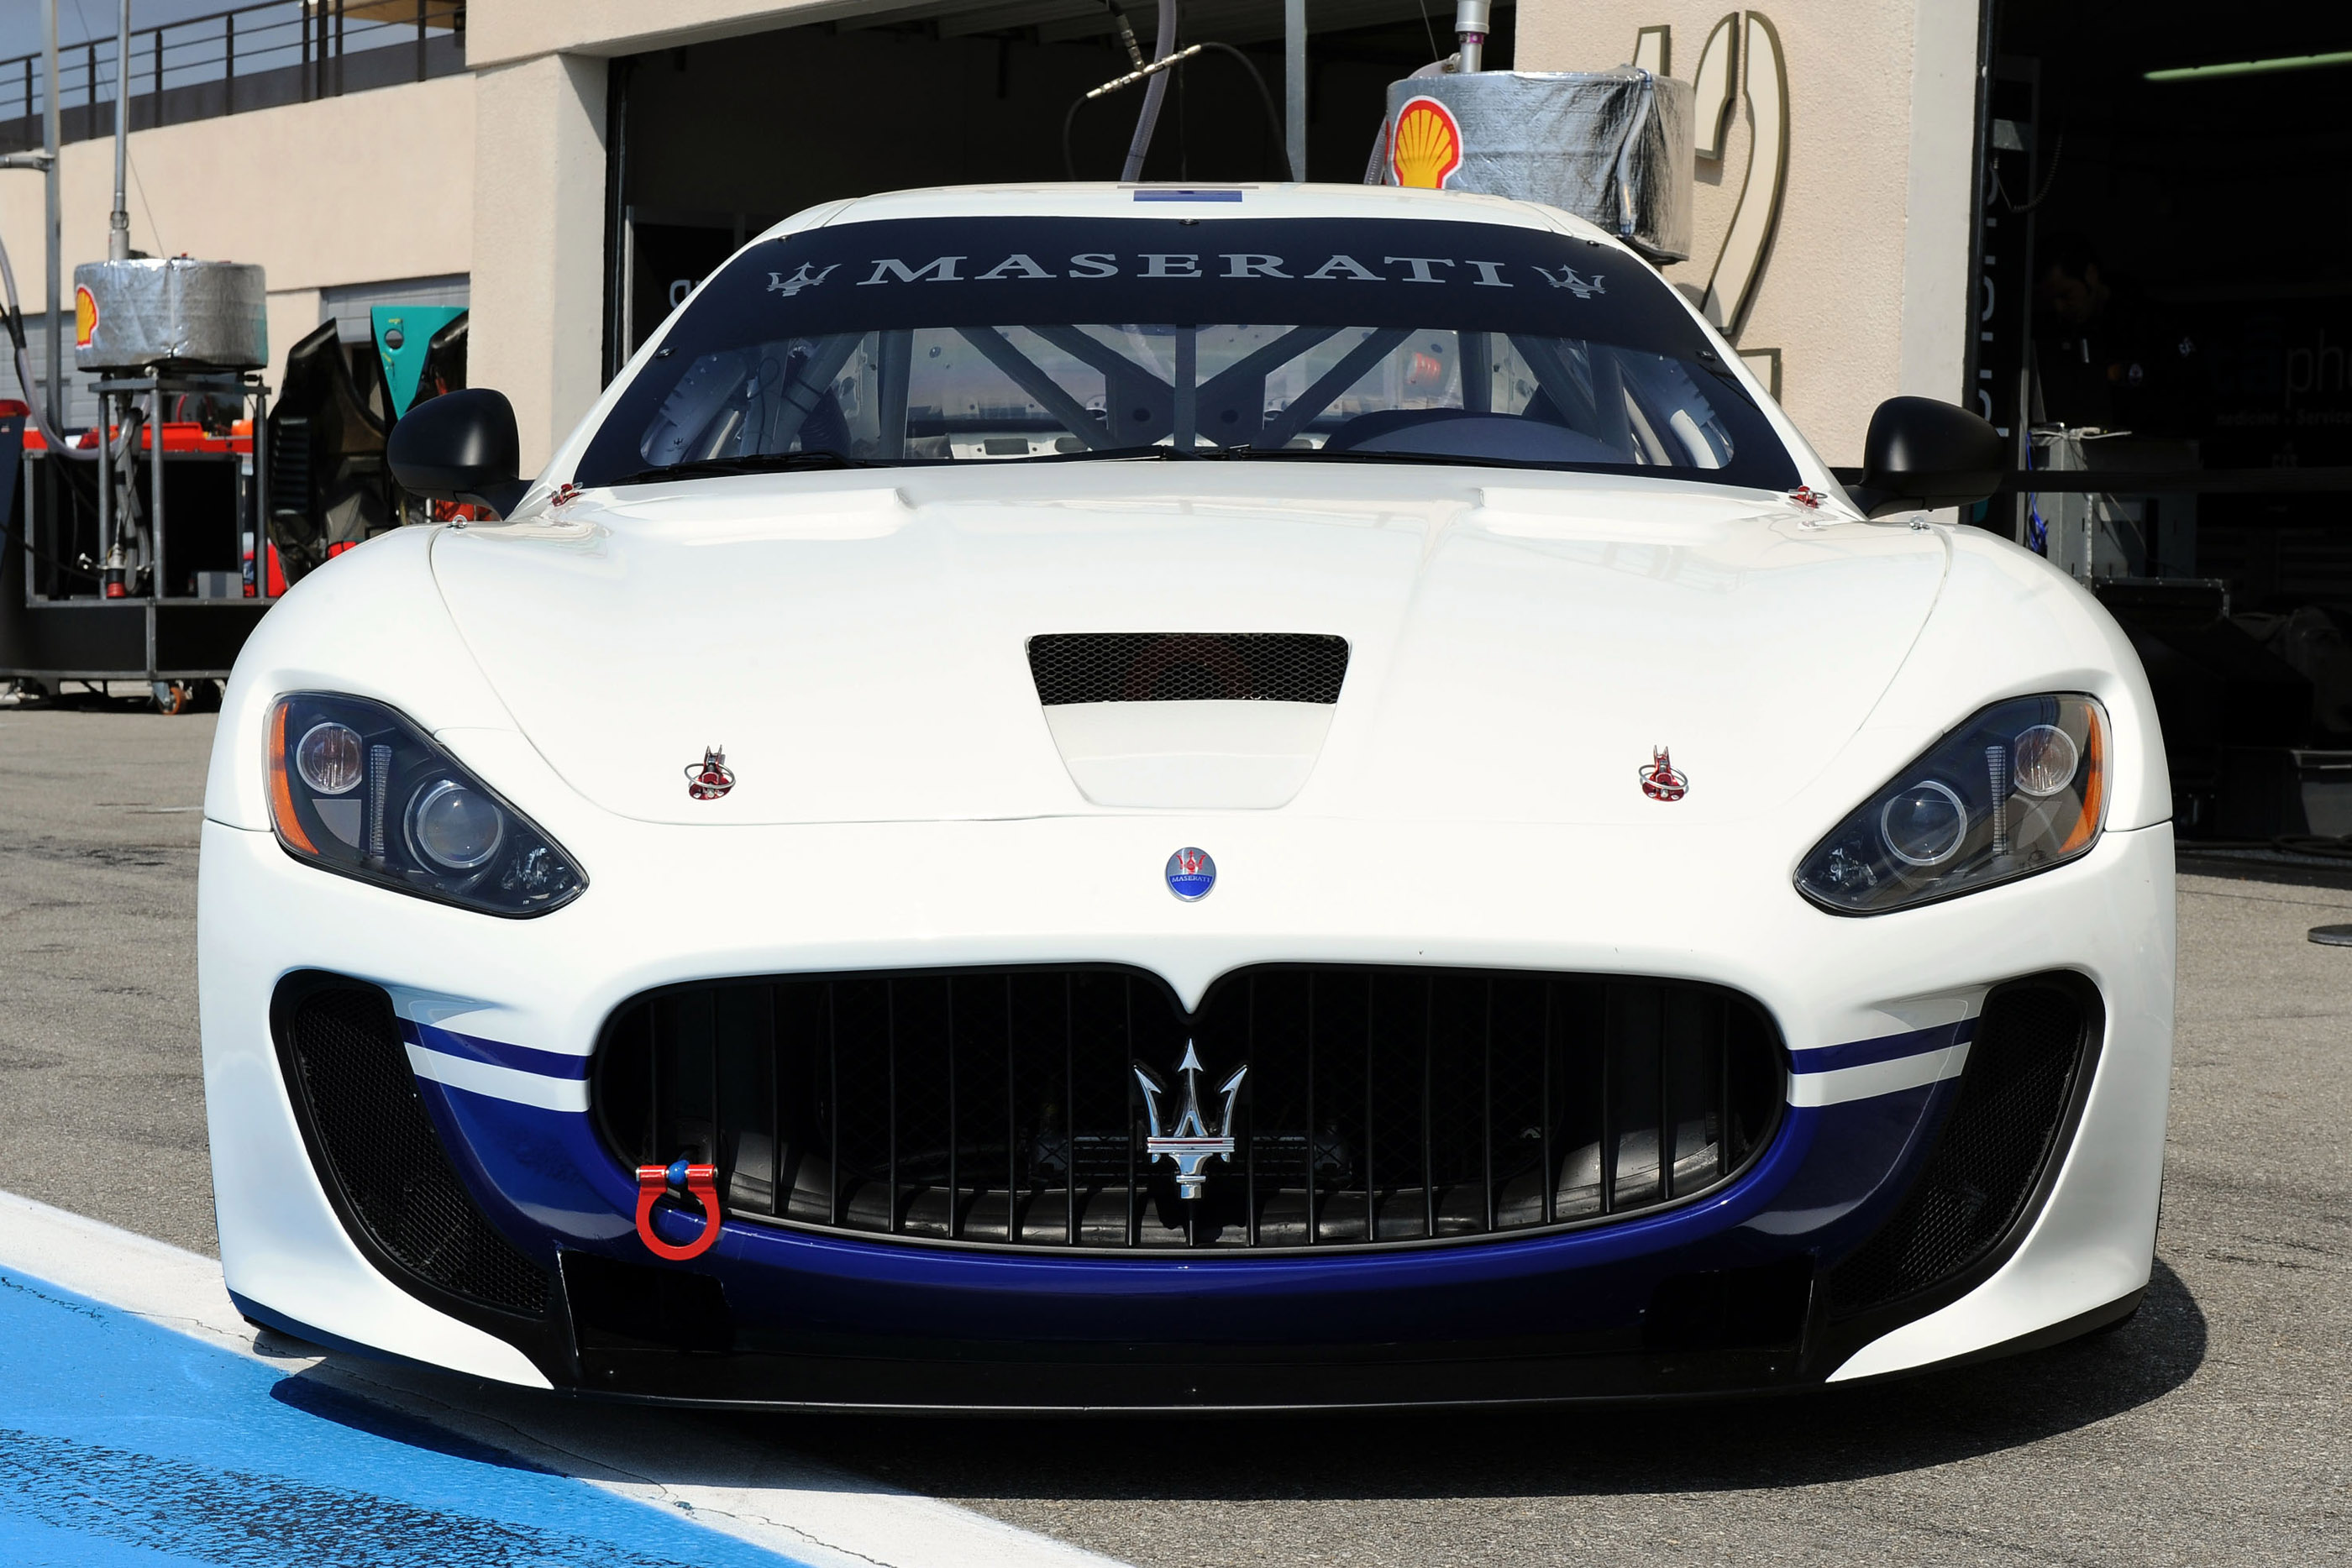 https://www.automobilesreview.com/gallery/maserati-granturismo-mc/maserati-granturismo-mc-03.jpg